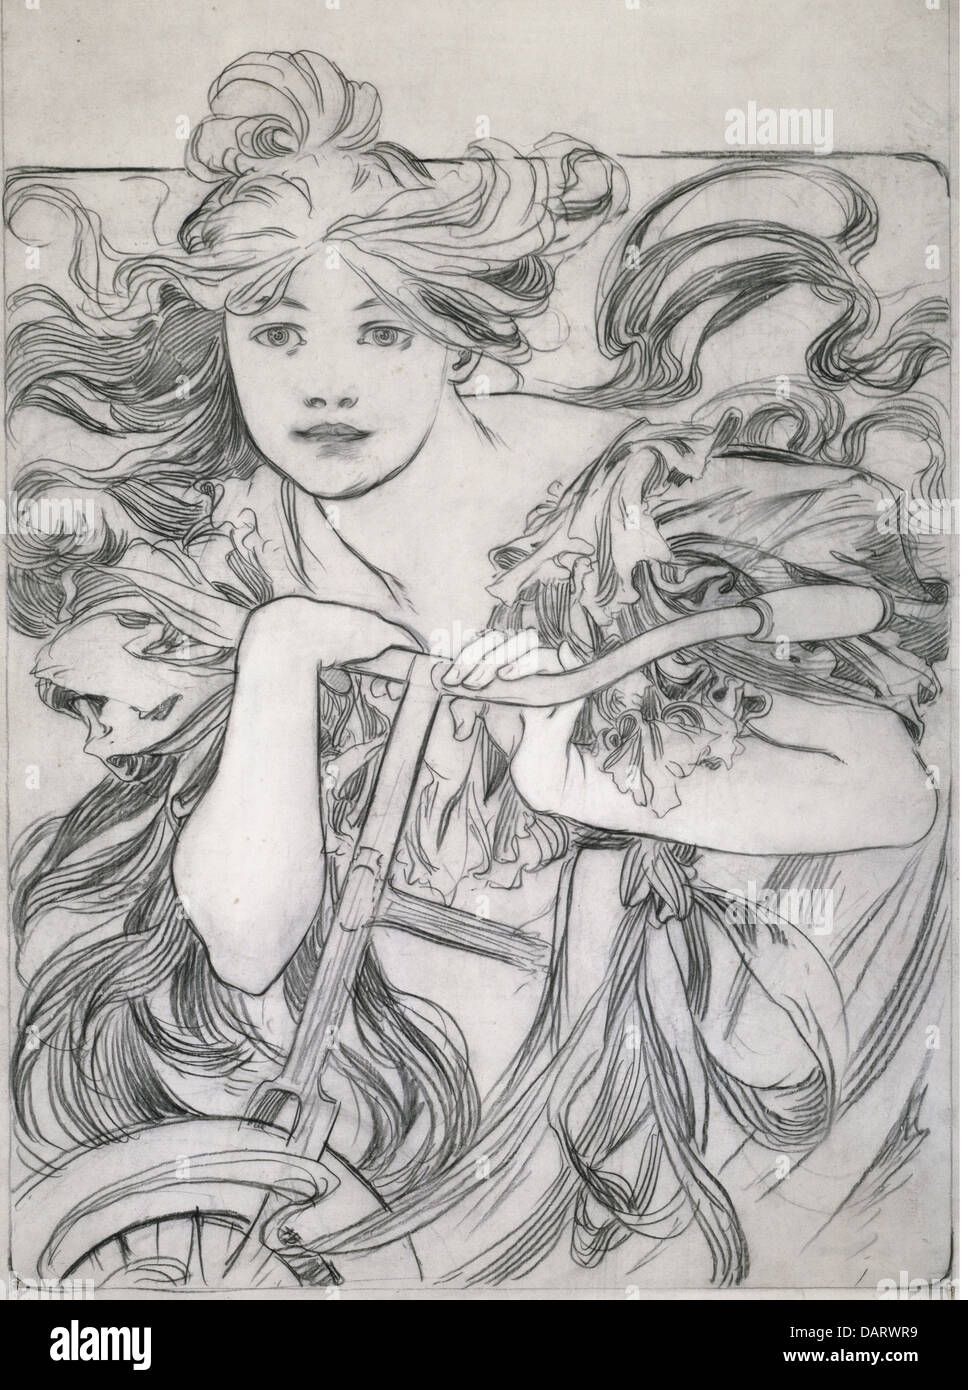 """fine arts, Mucha, Alfons (1860 - 1939), graphic, """"Cyclist"""", sketch, drawing, 1902, private collection,   bicycle, people, Stock Photo"""